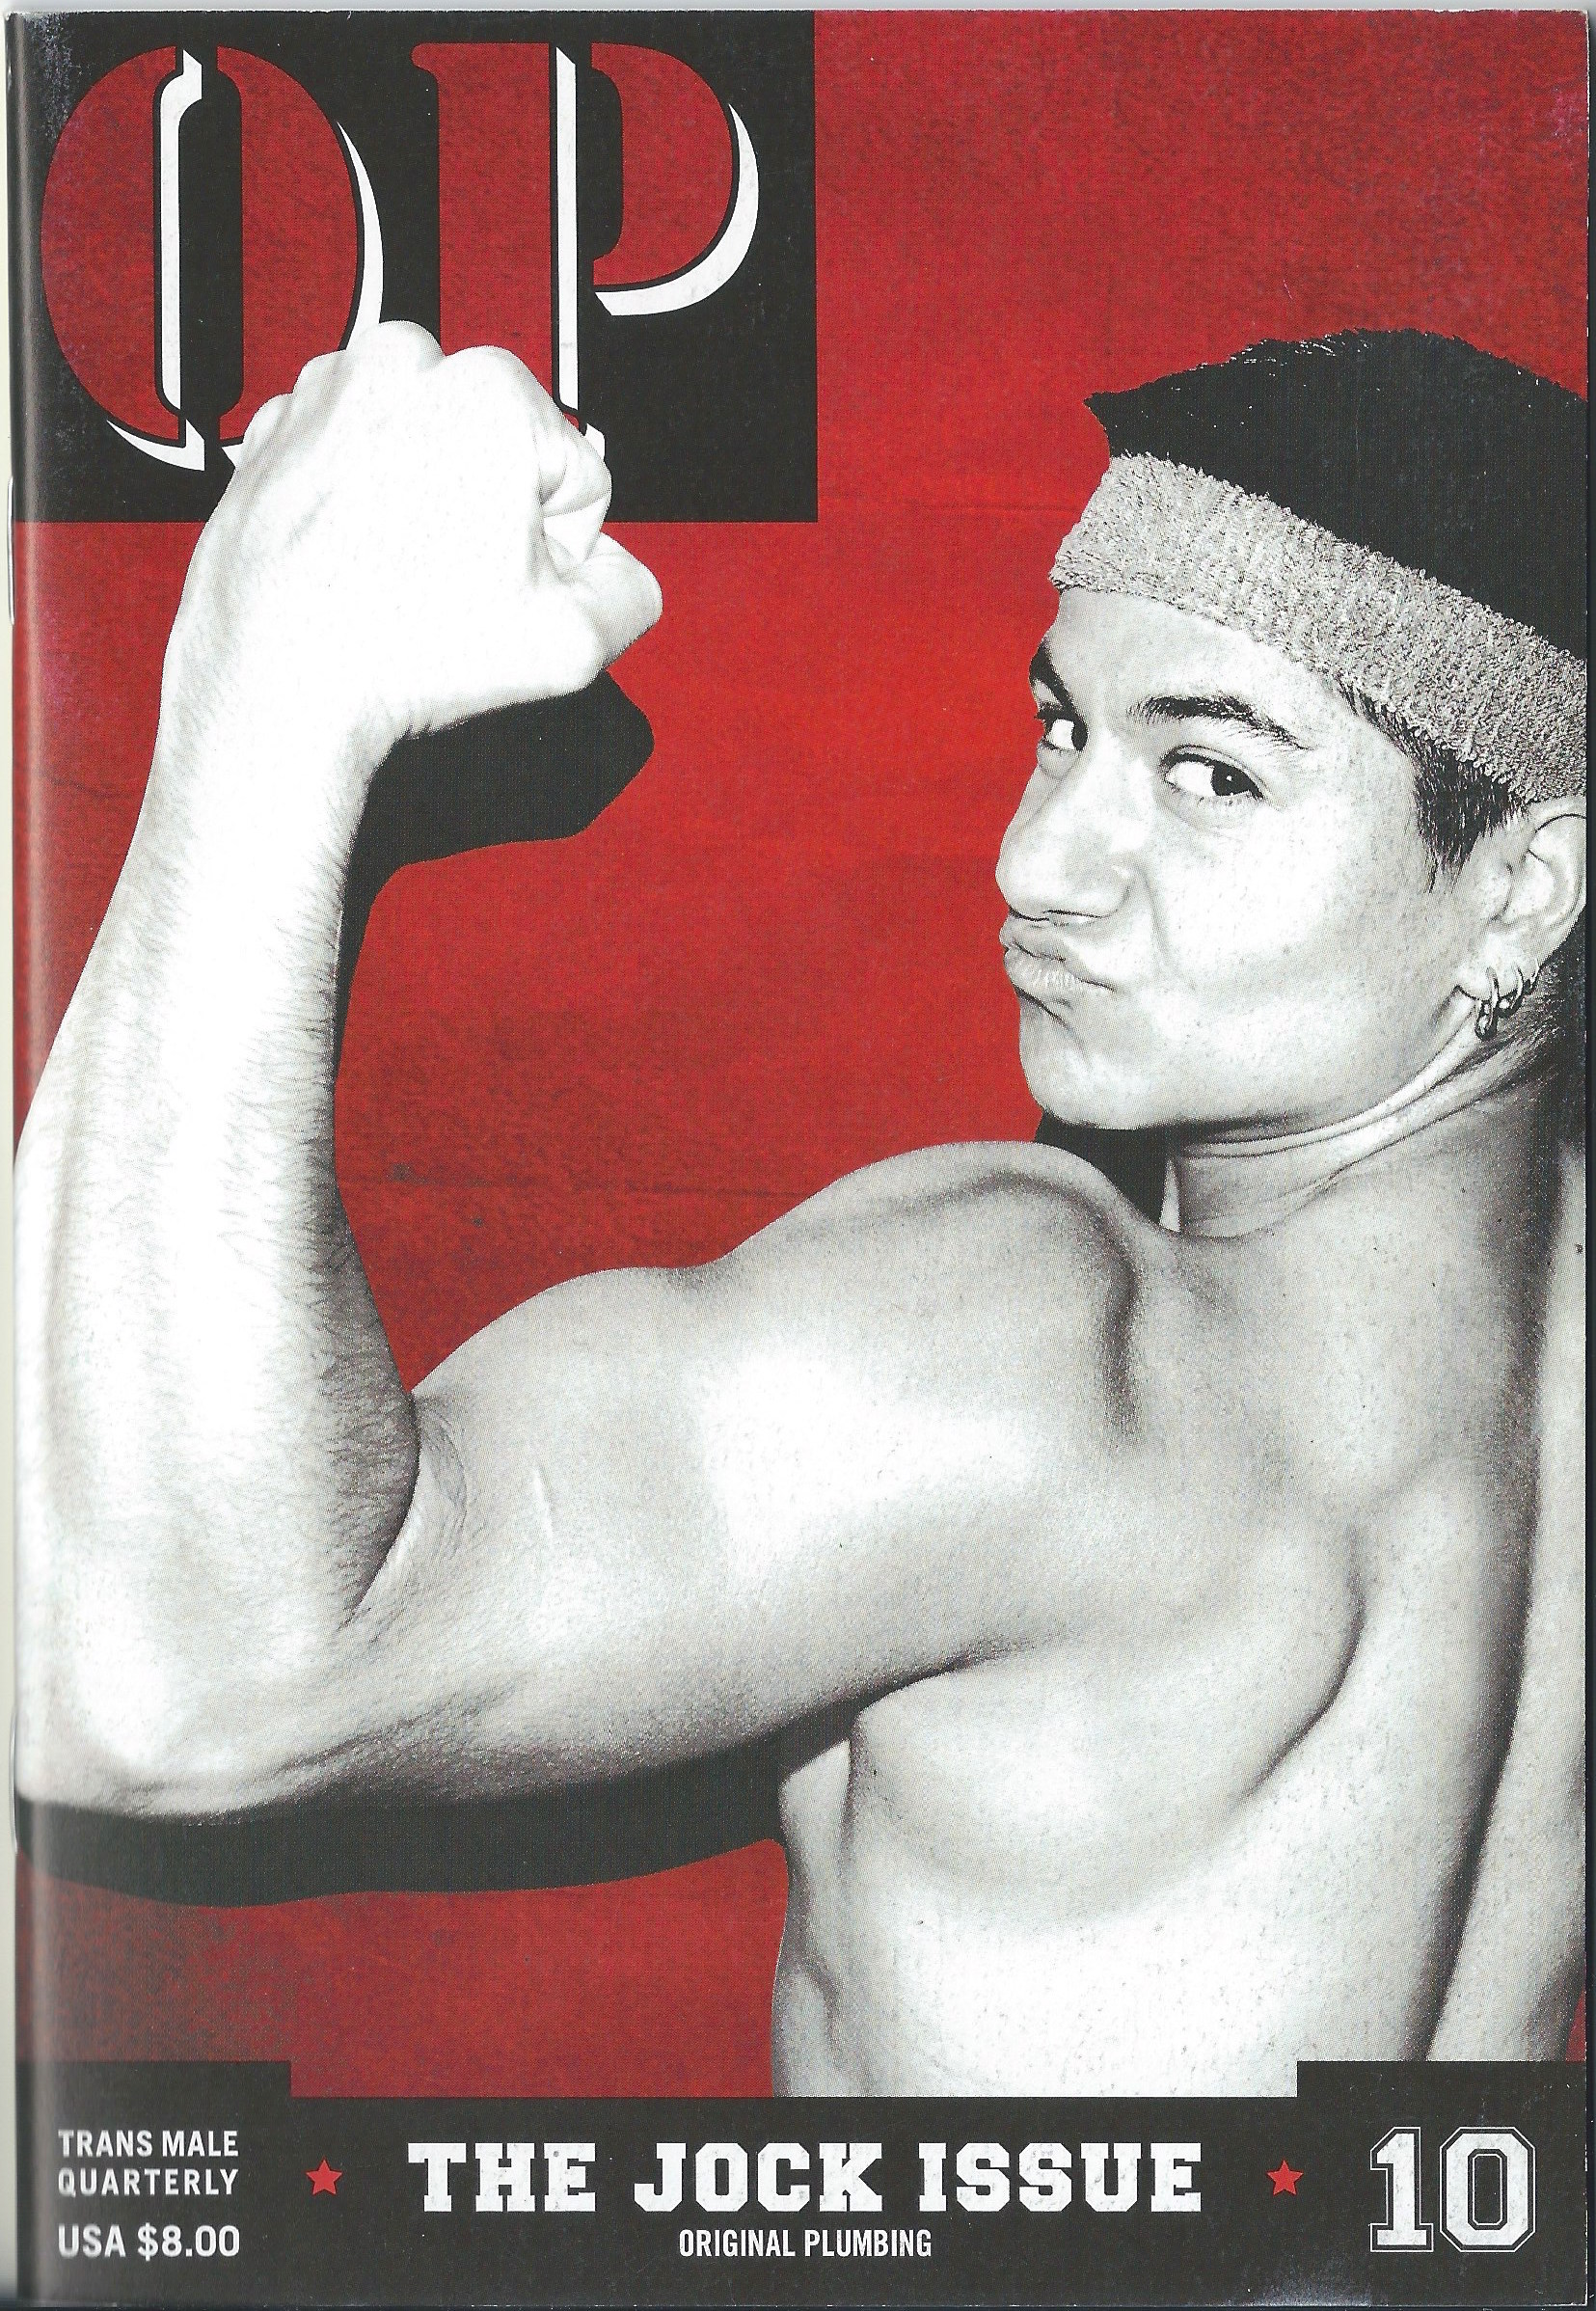 OP #10, Photographed by Amos Mac